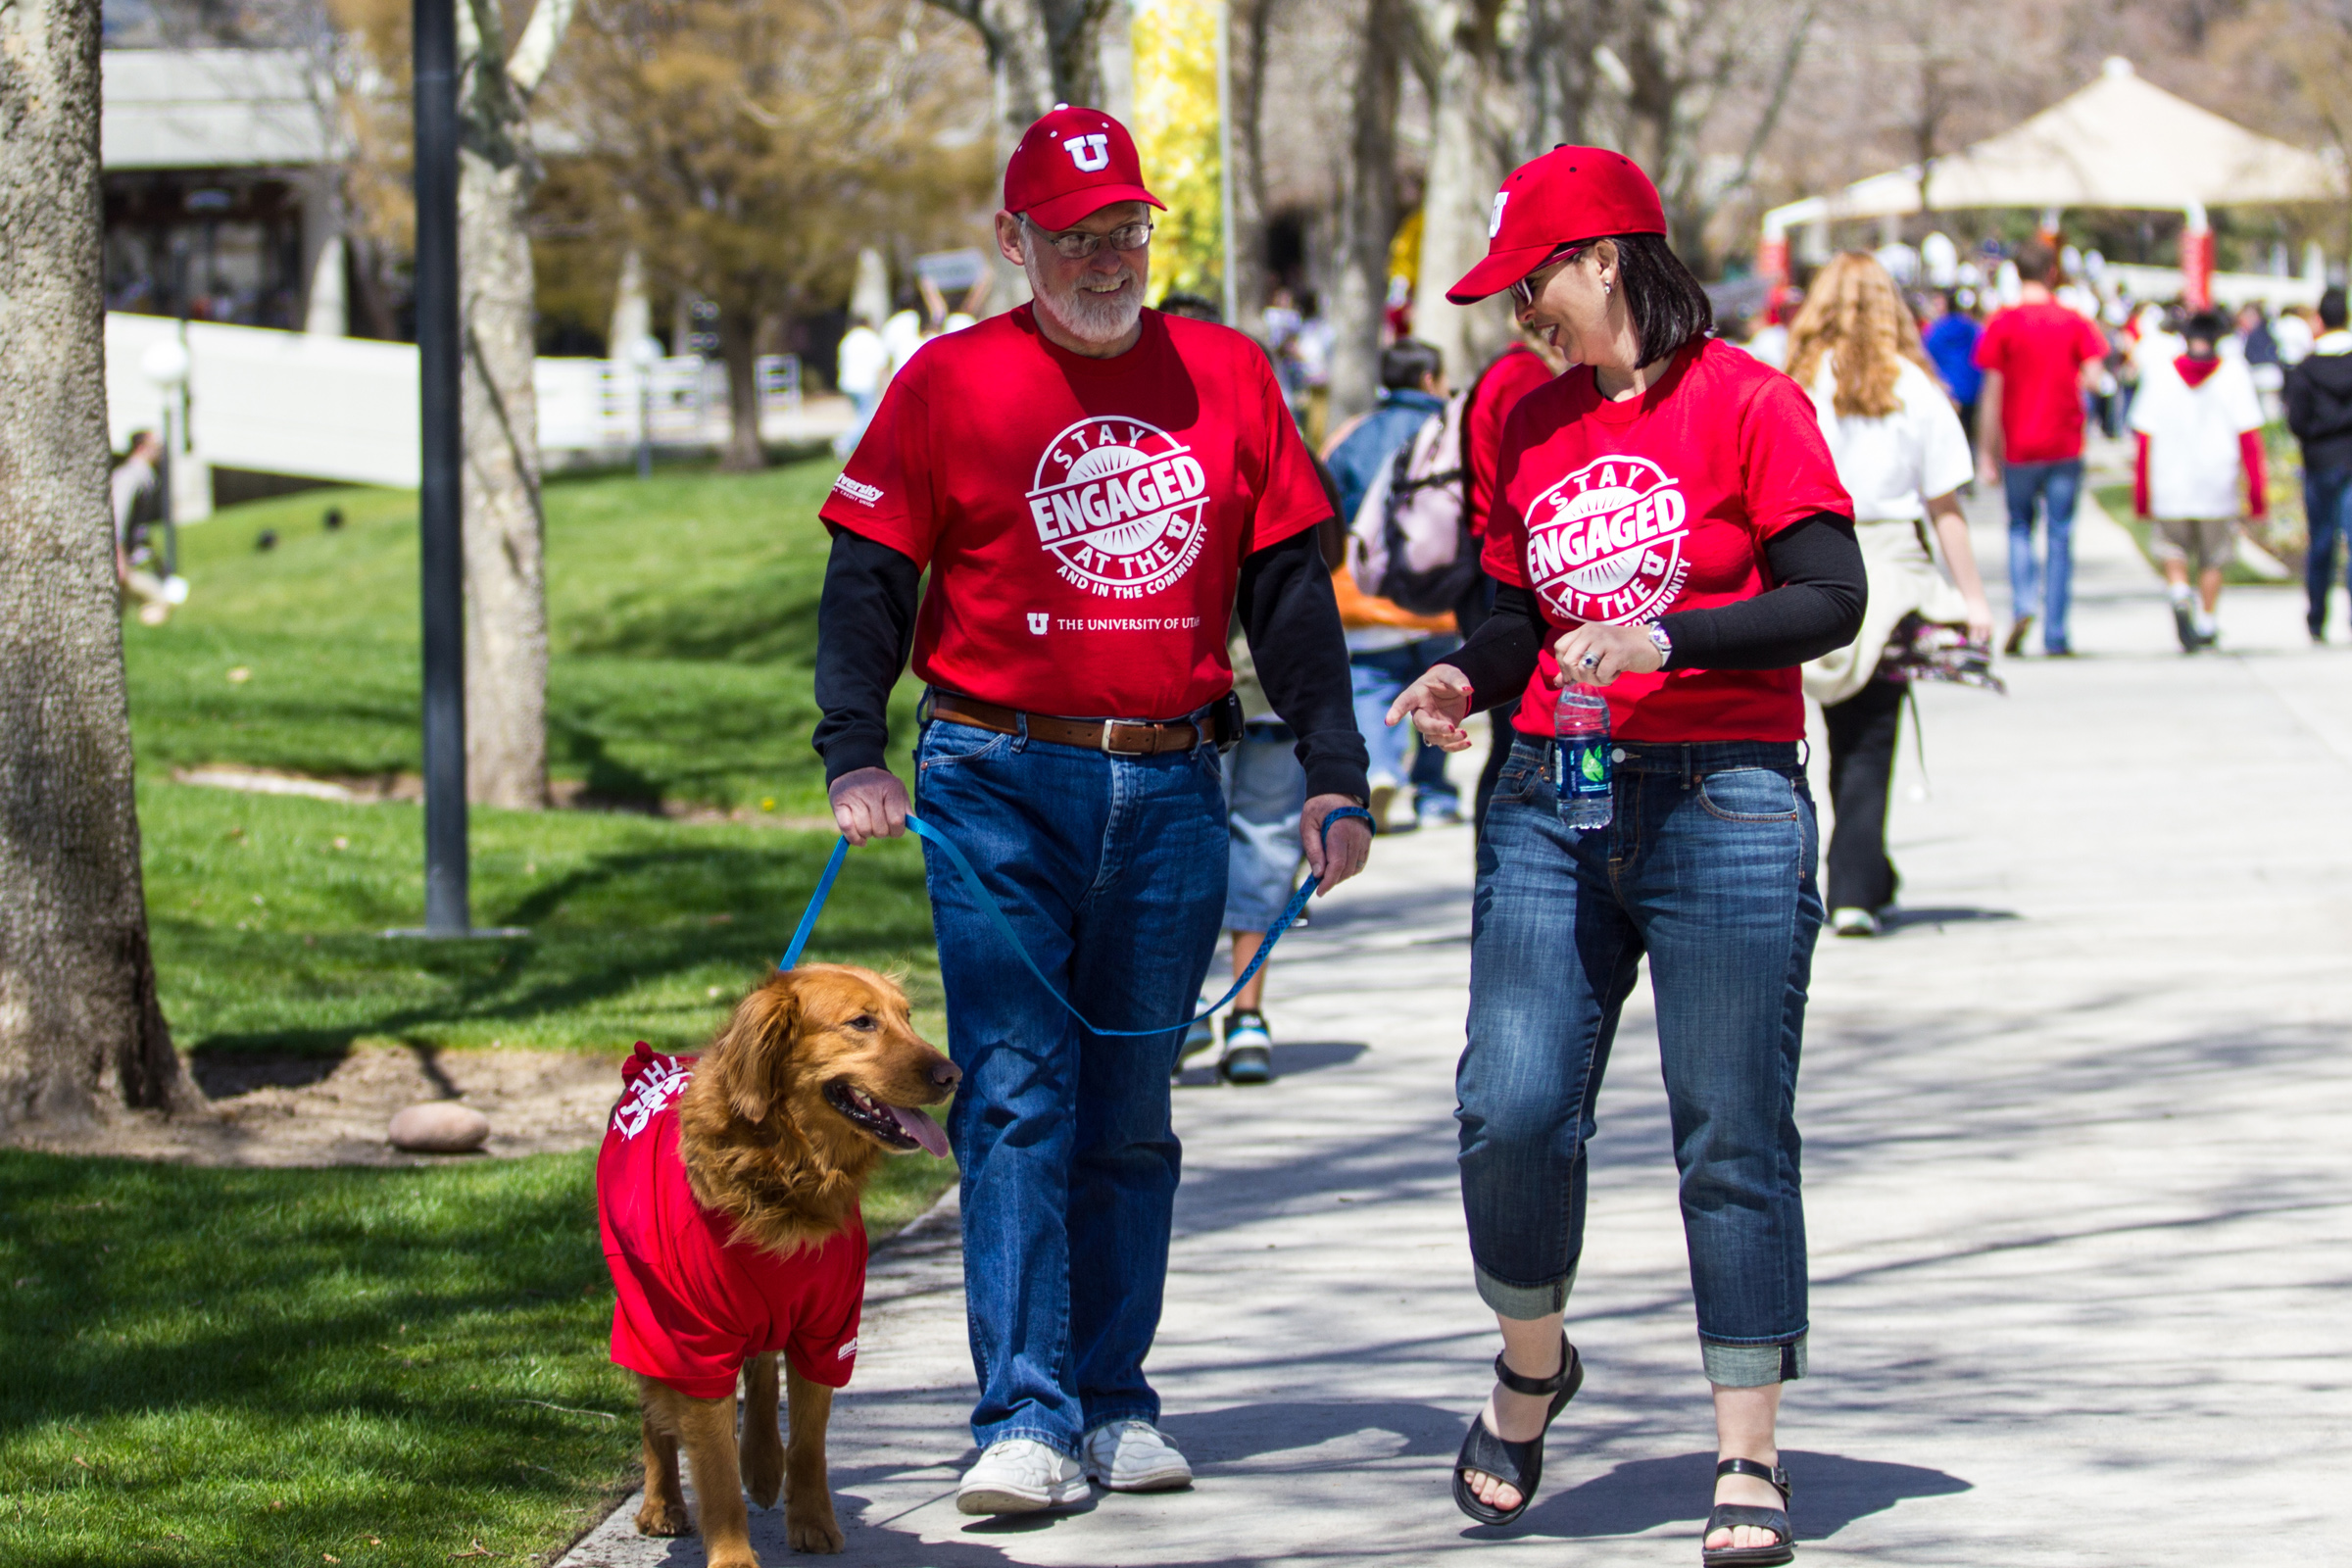 President Pershing participates in the 2013 walk-a-thon